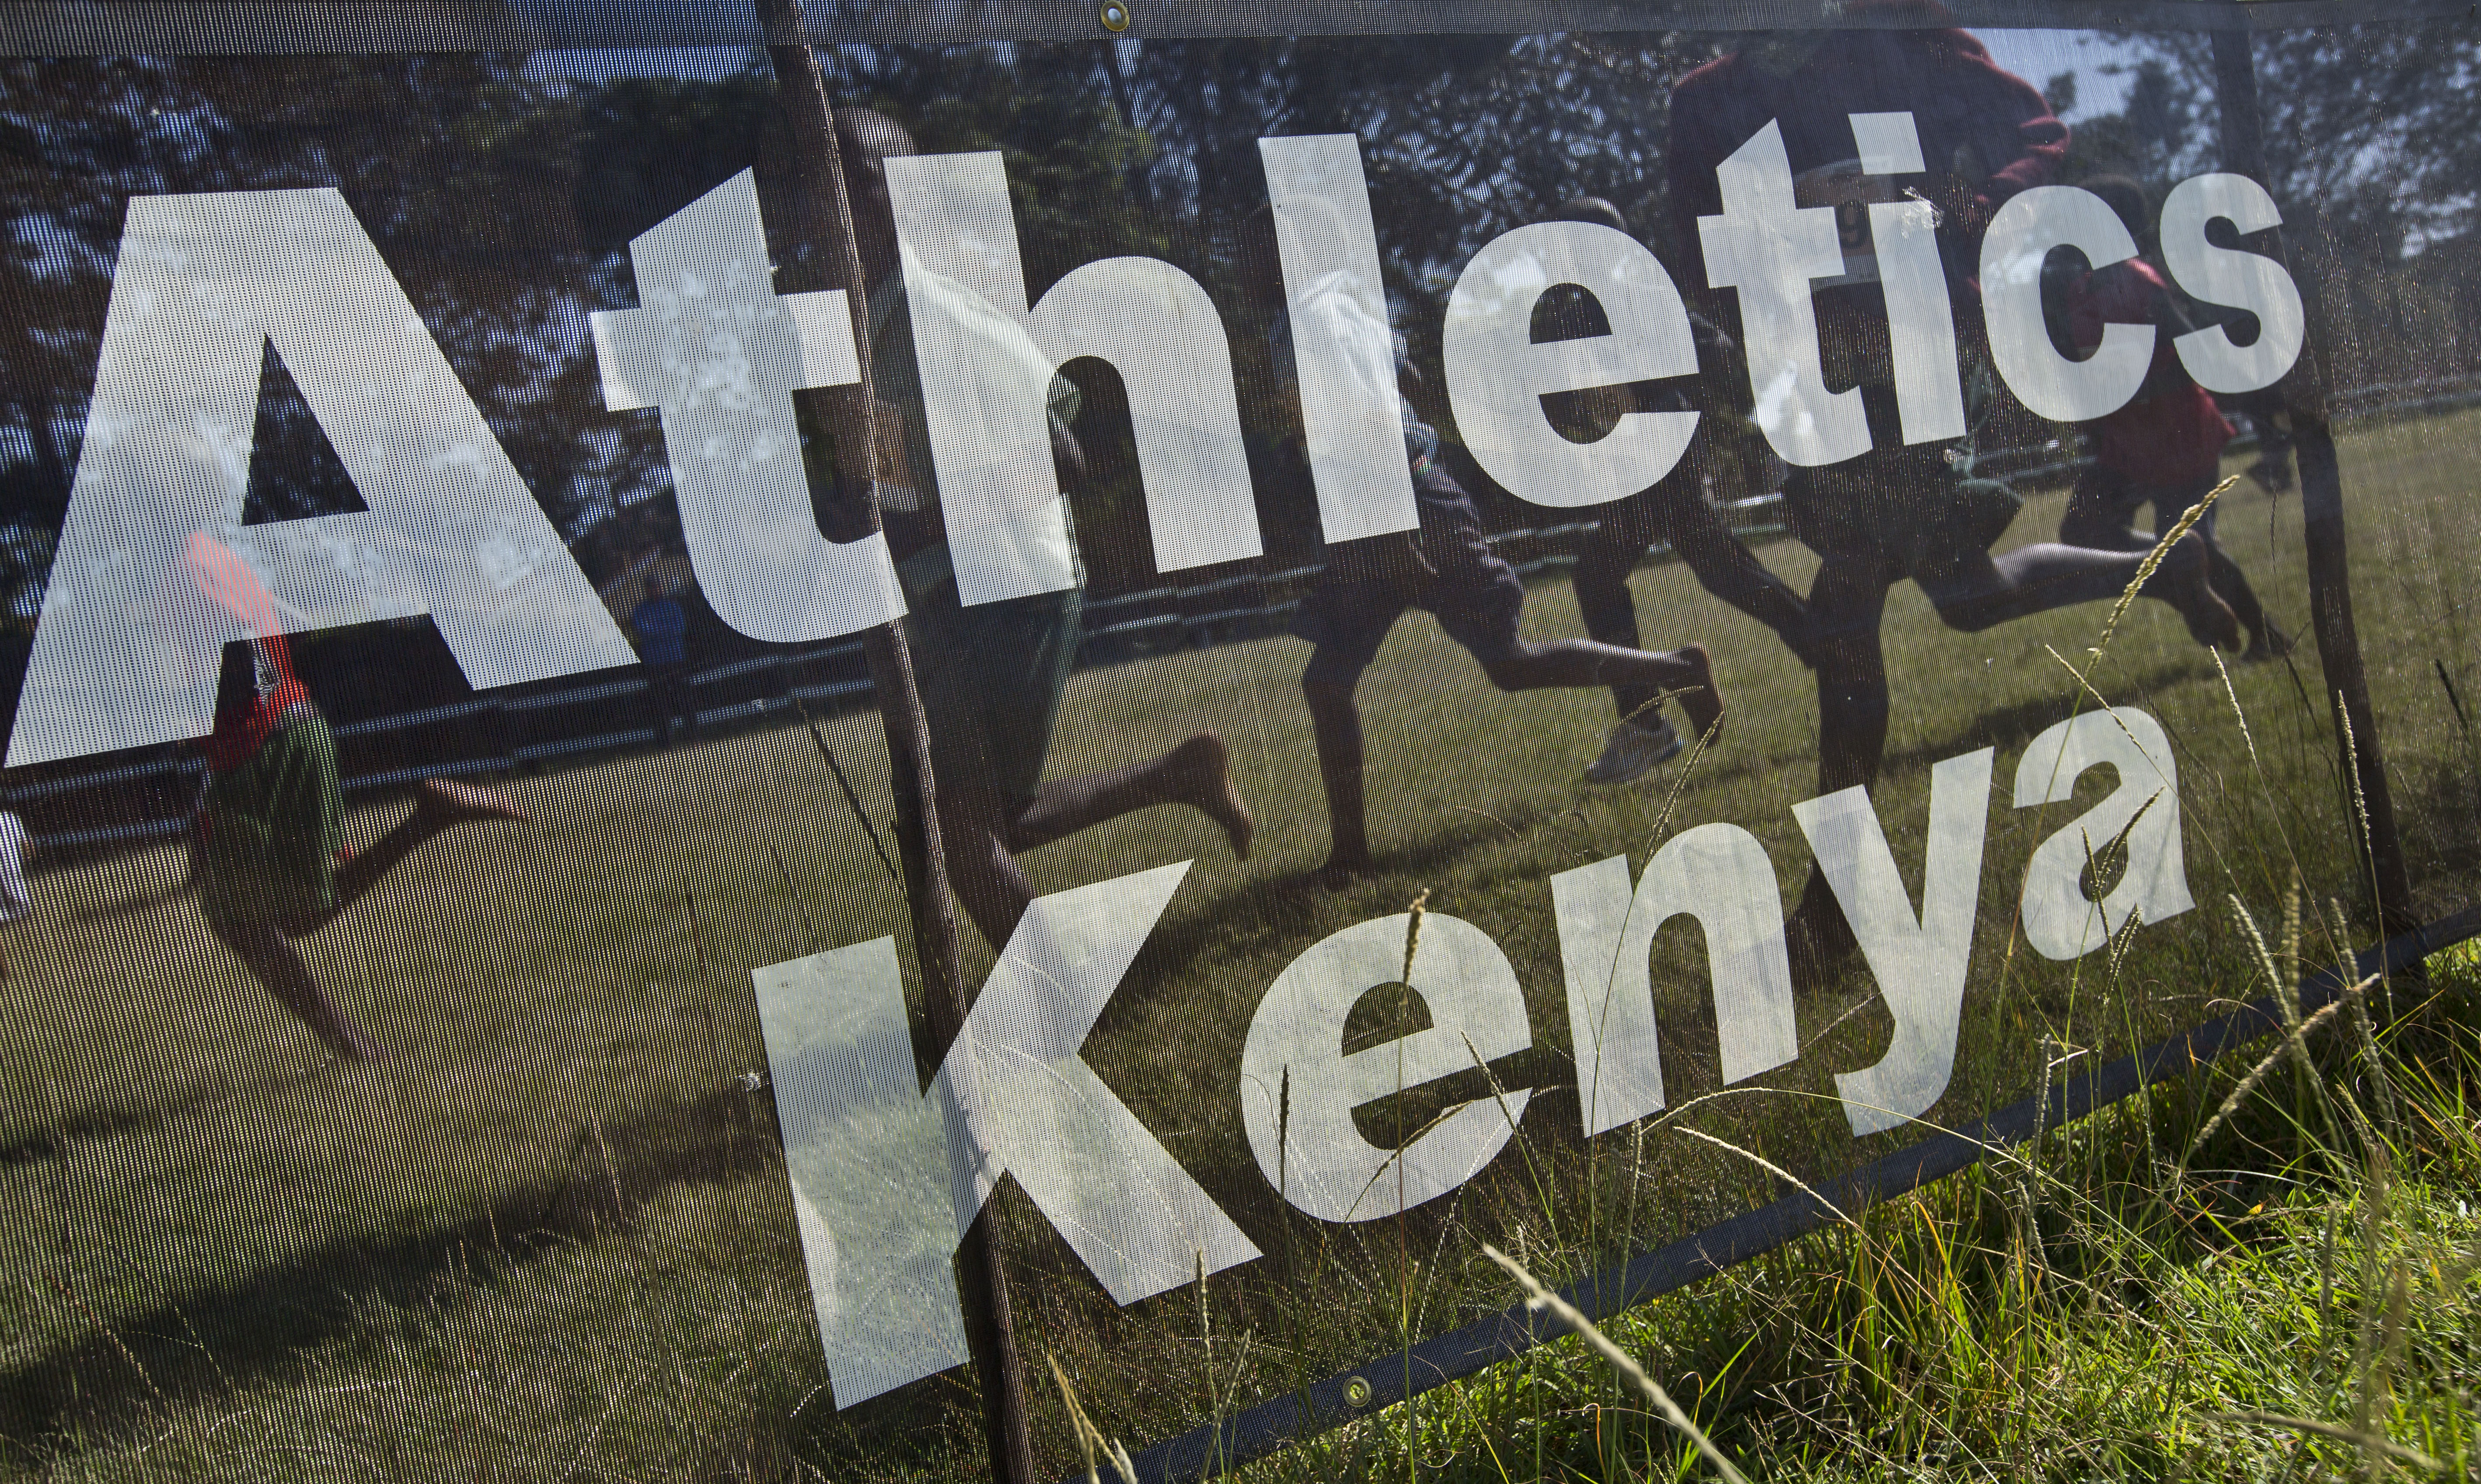 FILE - In this Sunday, Jan. 31, 2016 file photo, junior athletes run past a sign for Athletics Kenya at the Discovery cross country races, an annual race held to identify up-and-coming new young talent, in Eldoret, Kenya. World Anti-Doping Agency (WADA) o